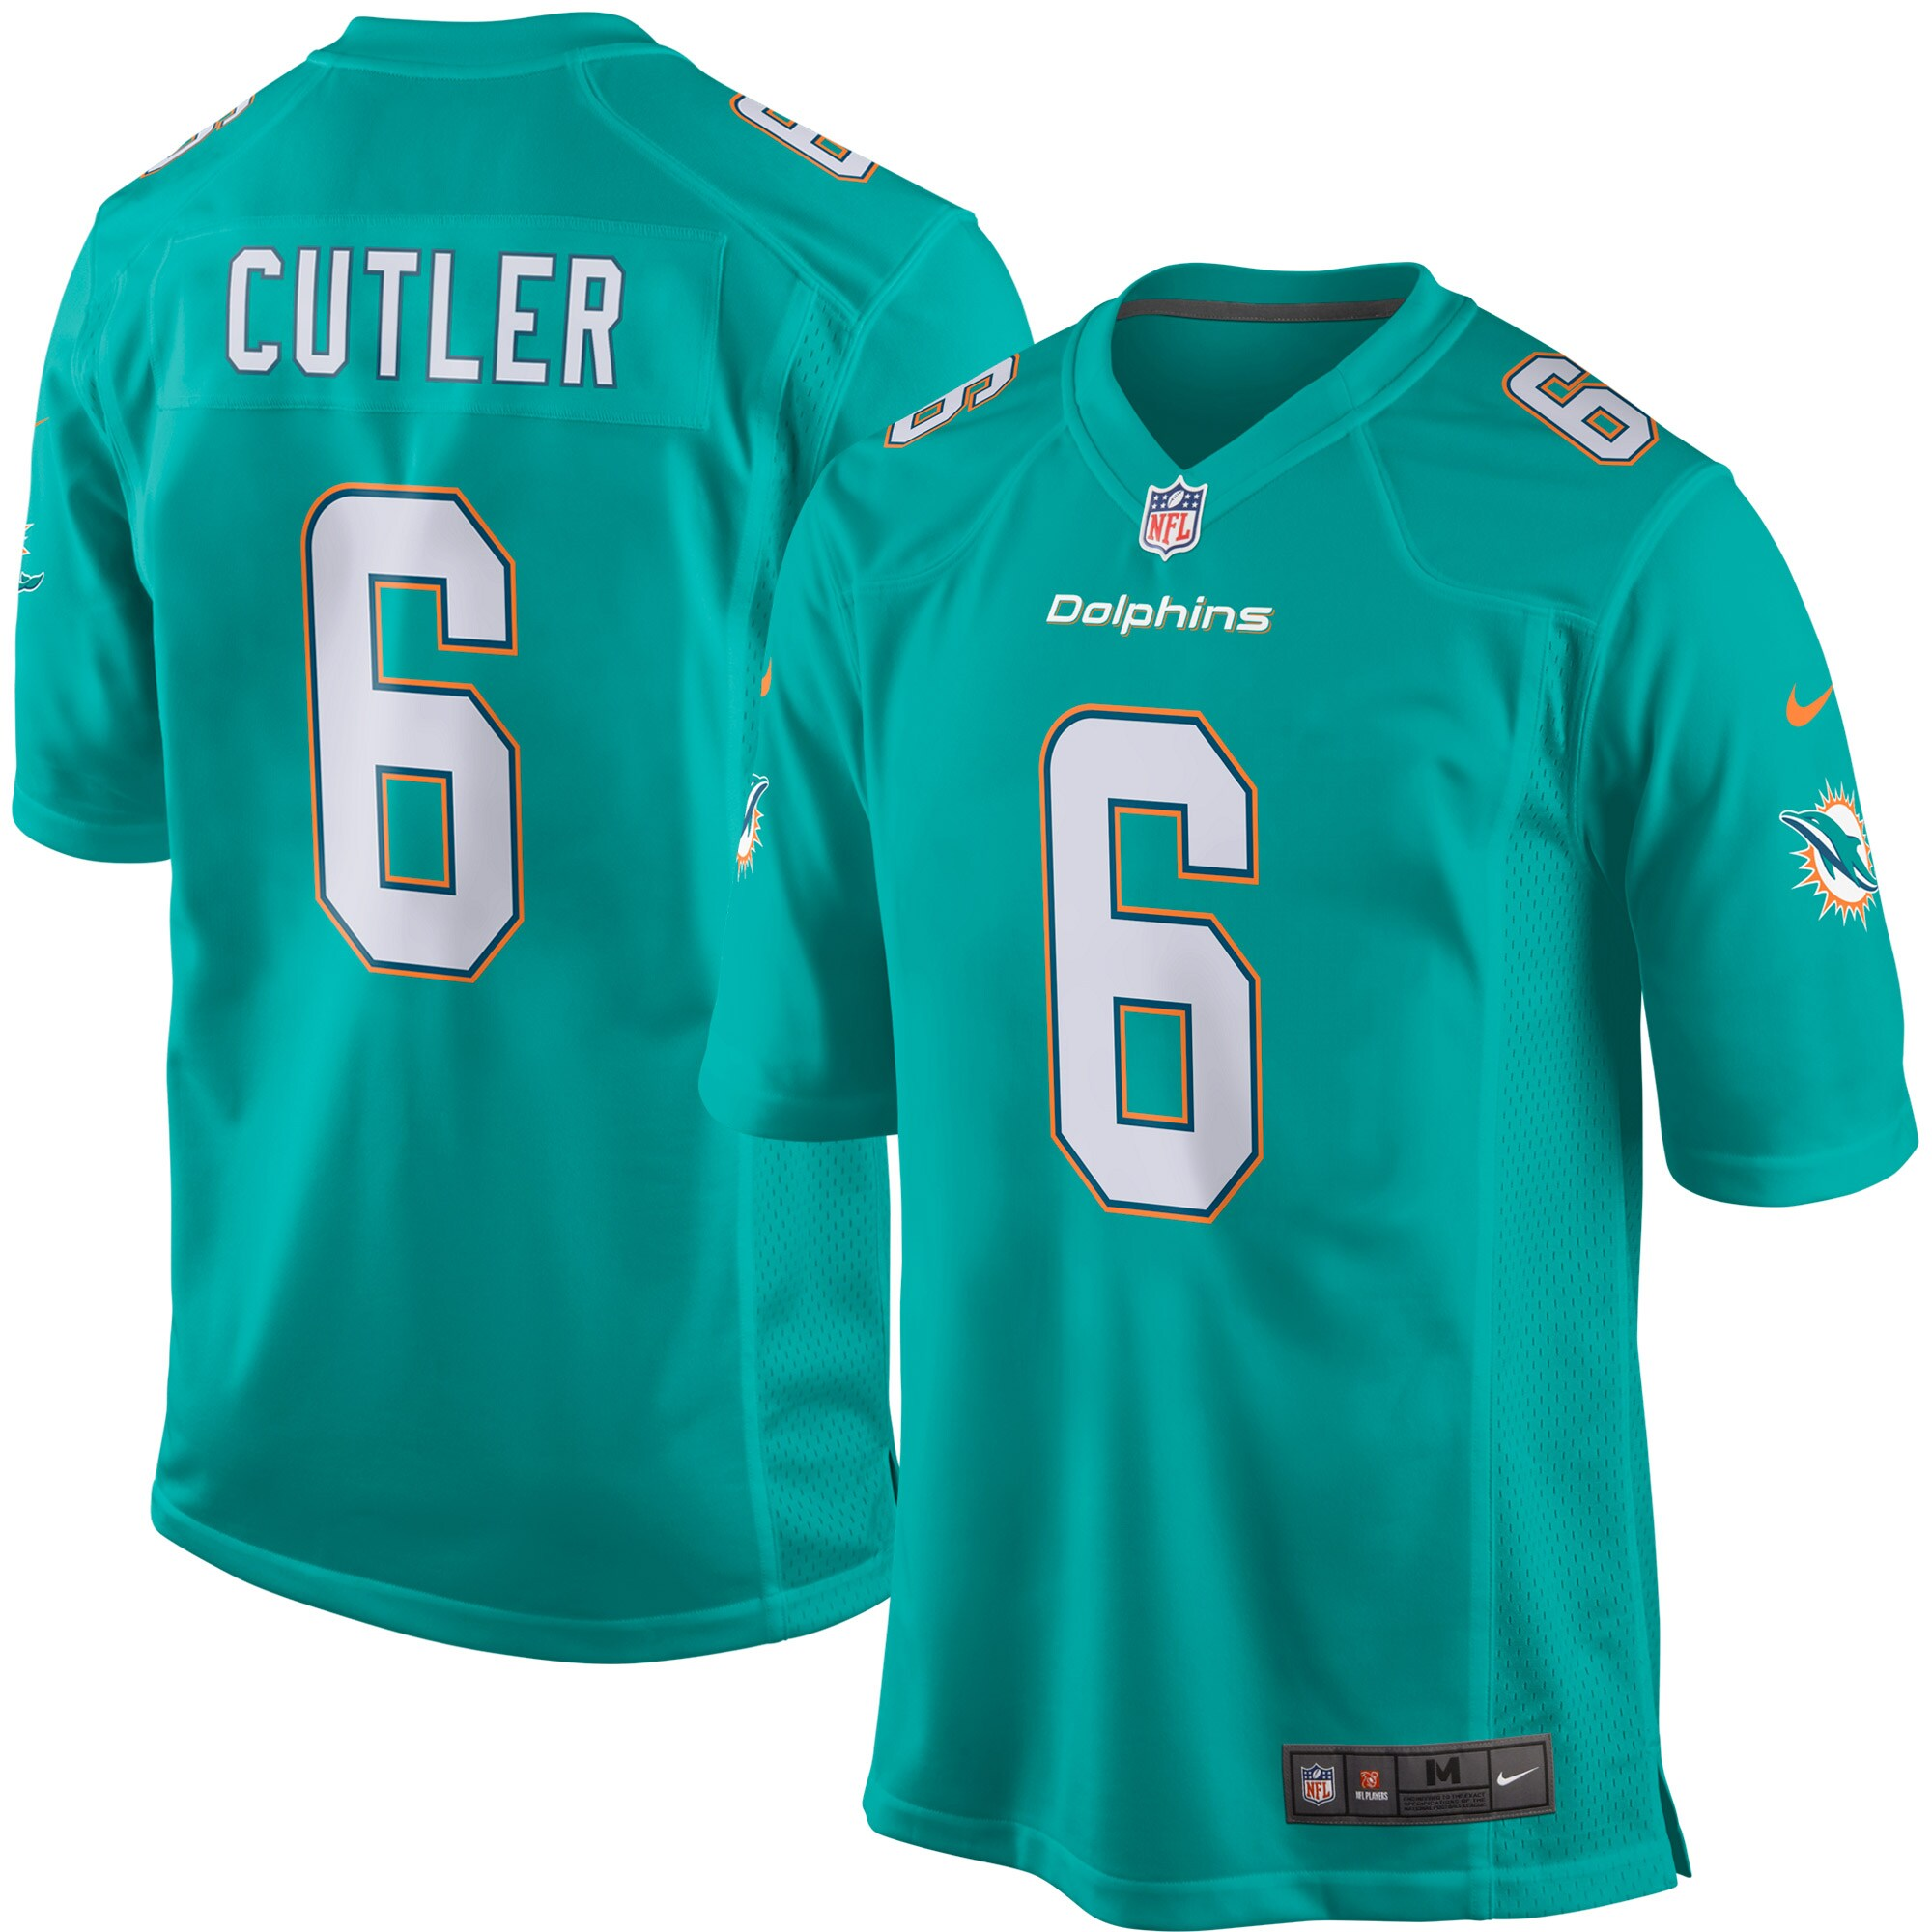 Jay Cutler Miami Dolphins Nike Youth Game Jersey - Aqua